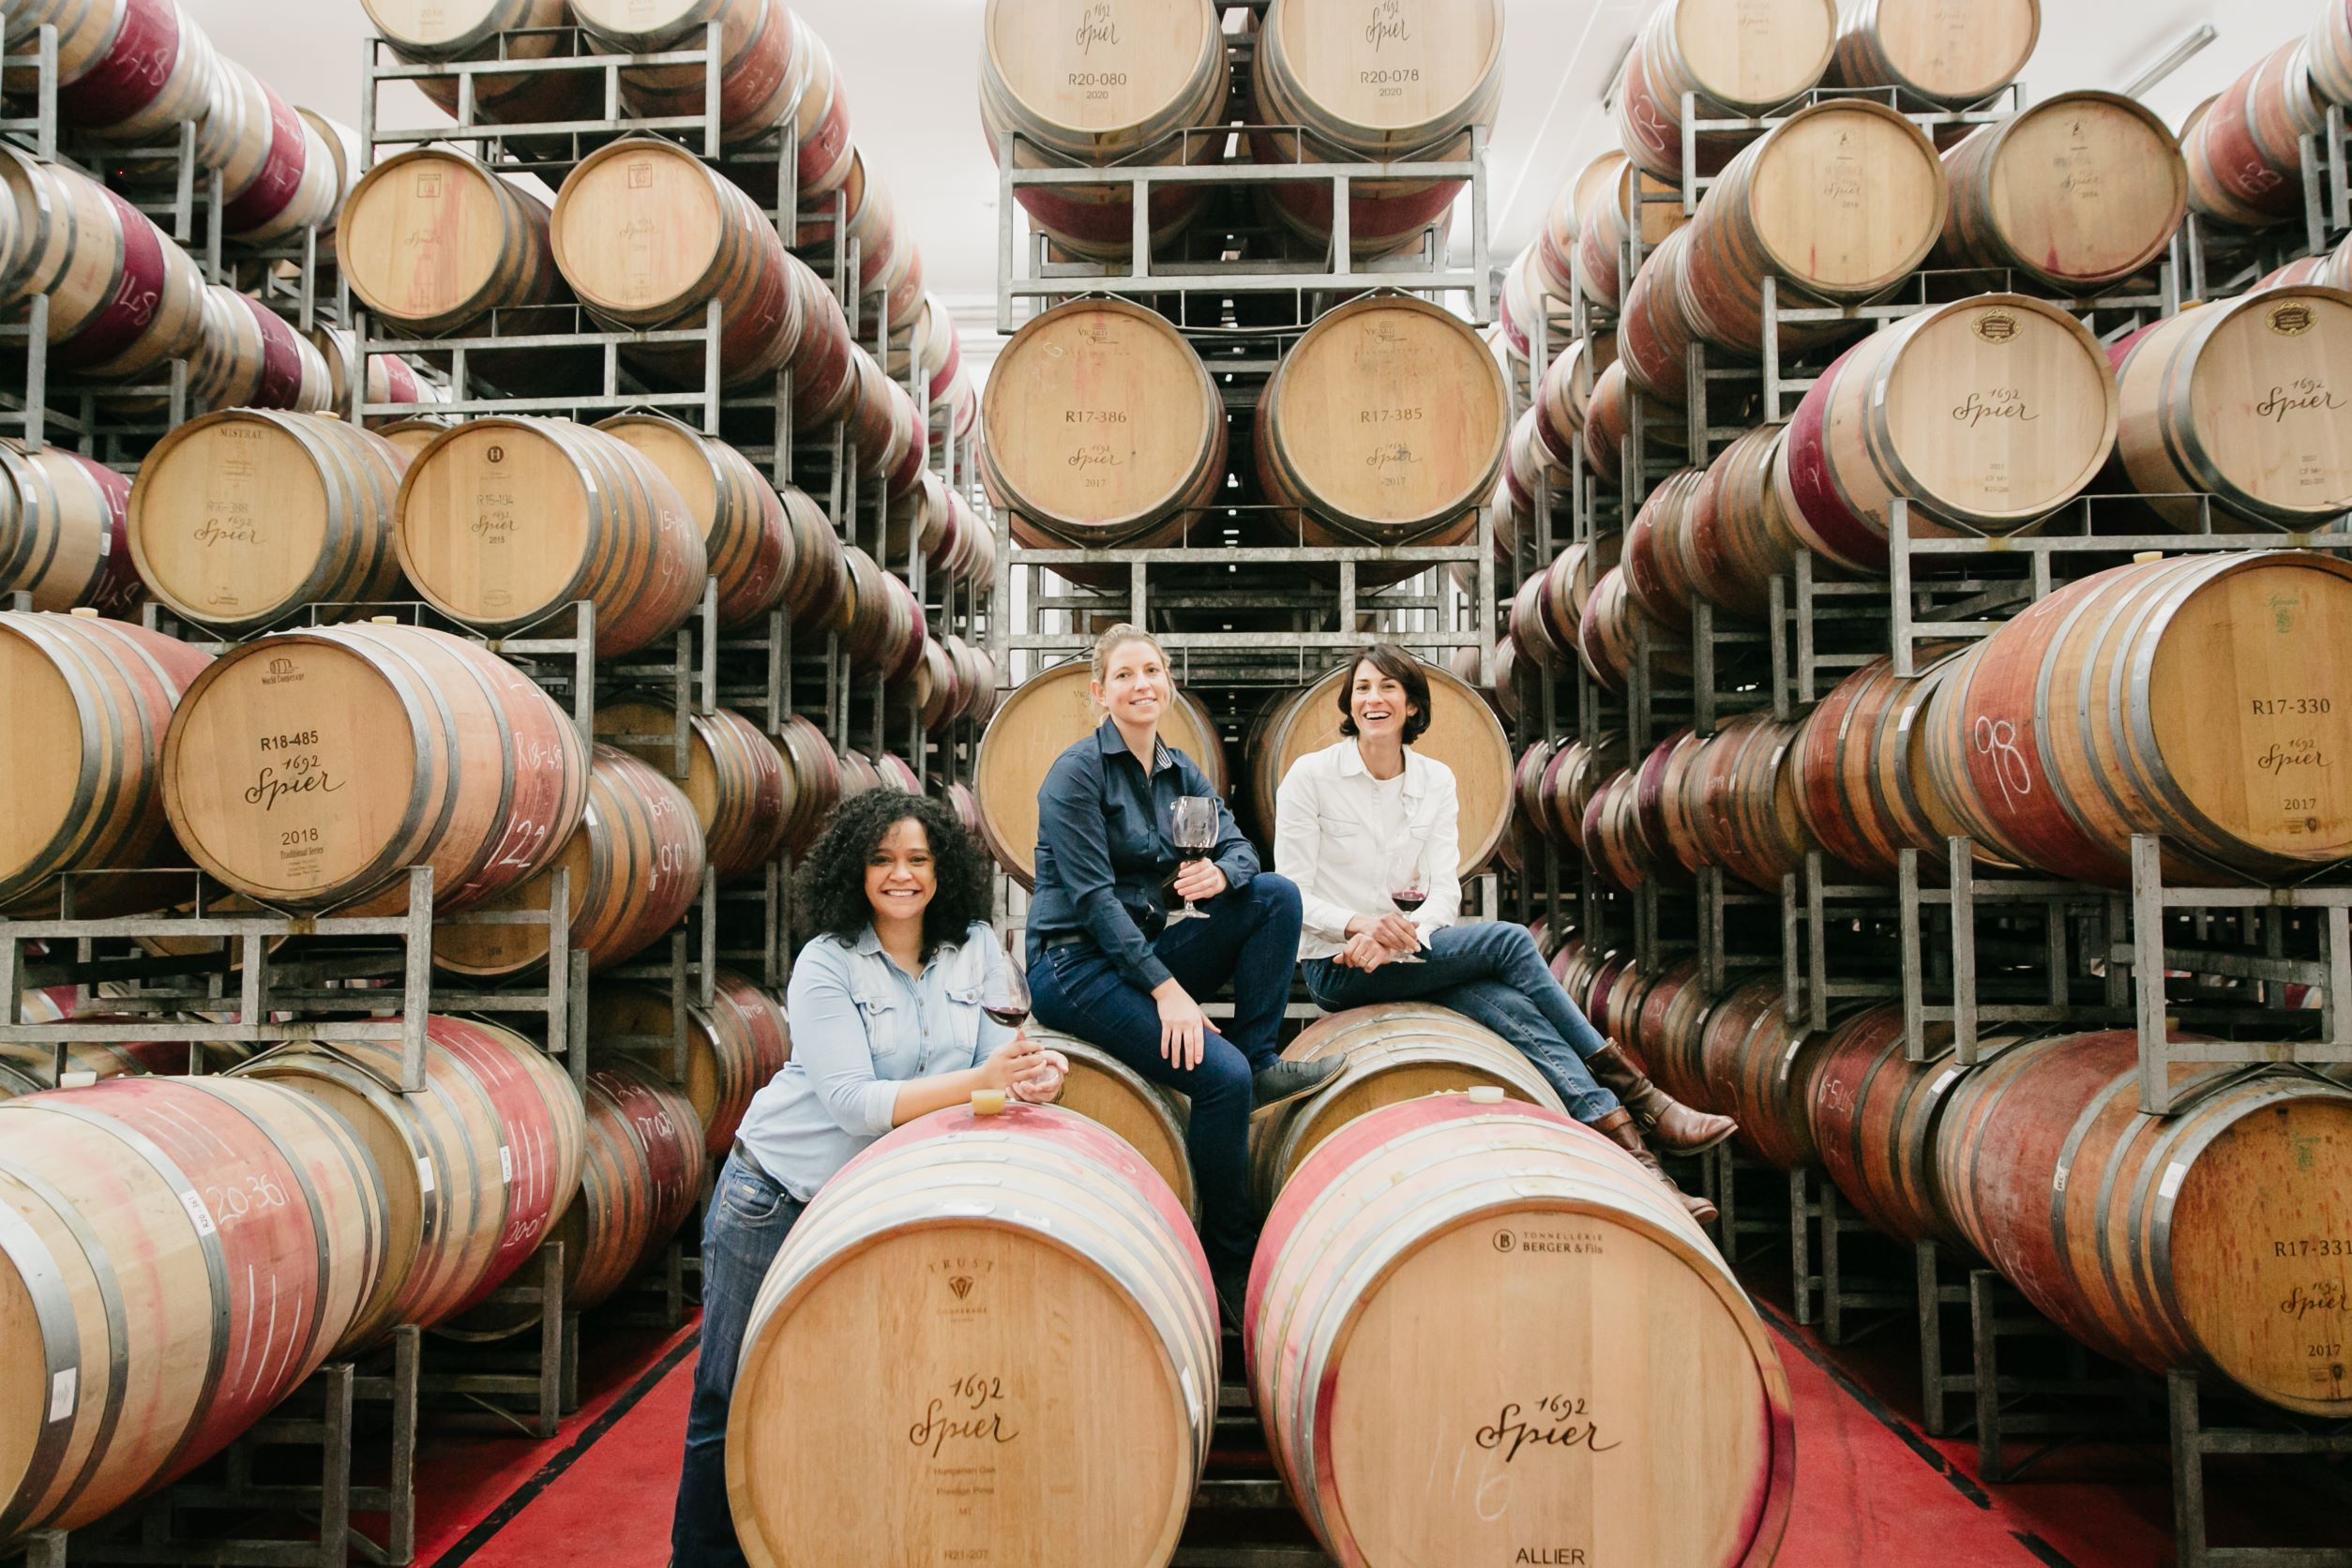 Women winemakers who usher in the future